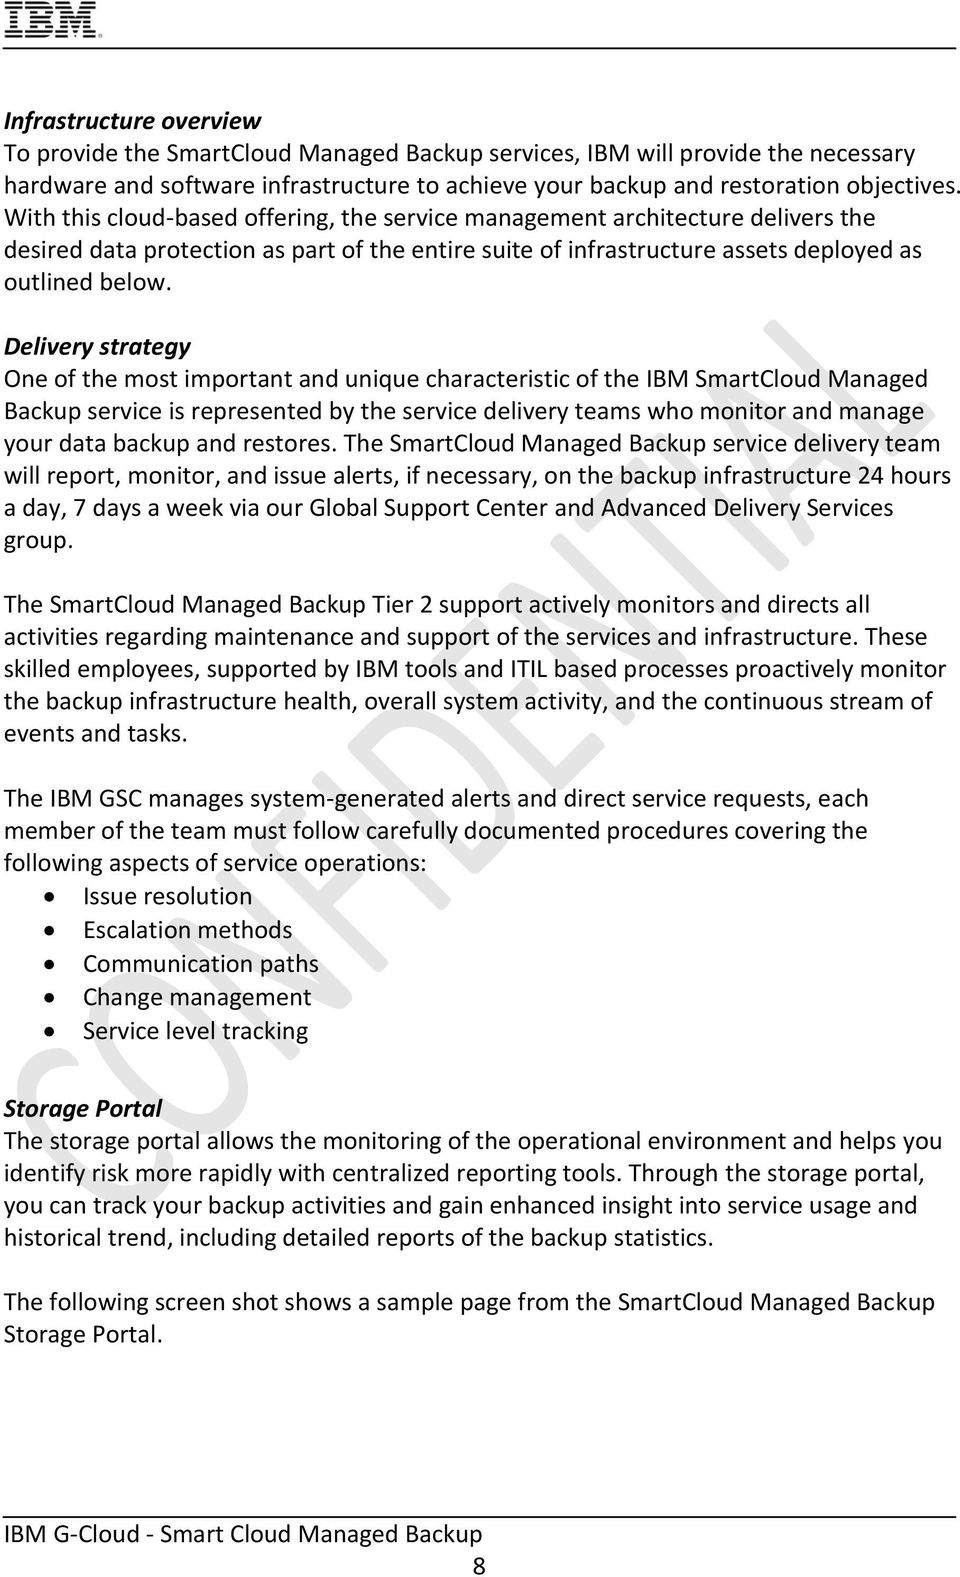 Delivery strategy One of the most important and unique characteristic of the IBM SmartCloud Managed Backup service is represented by the service delivery teams who monitor and manage your data backup